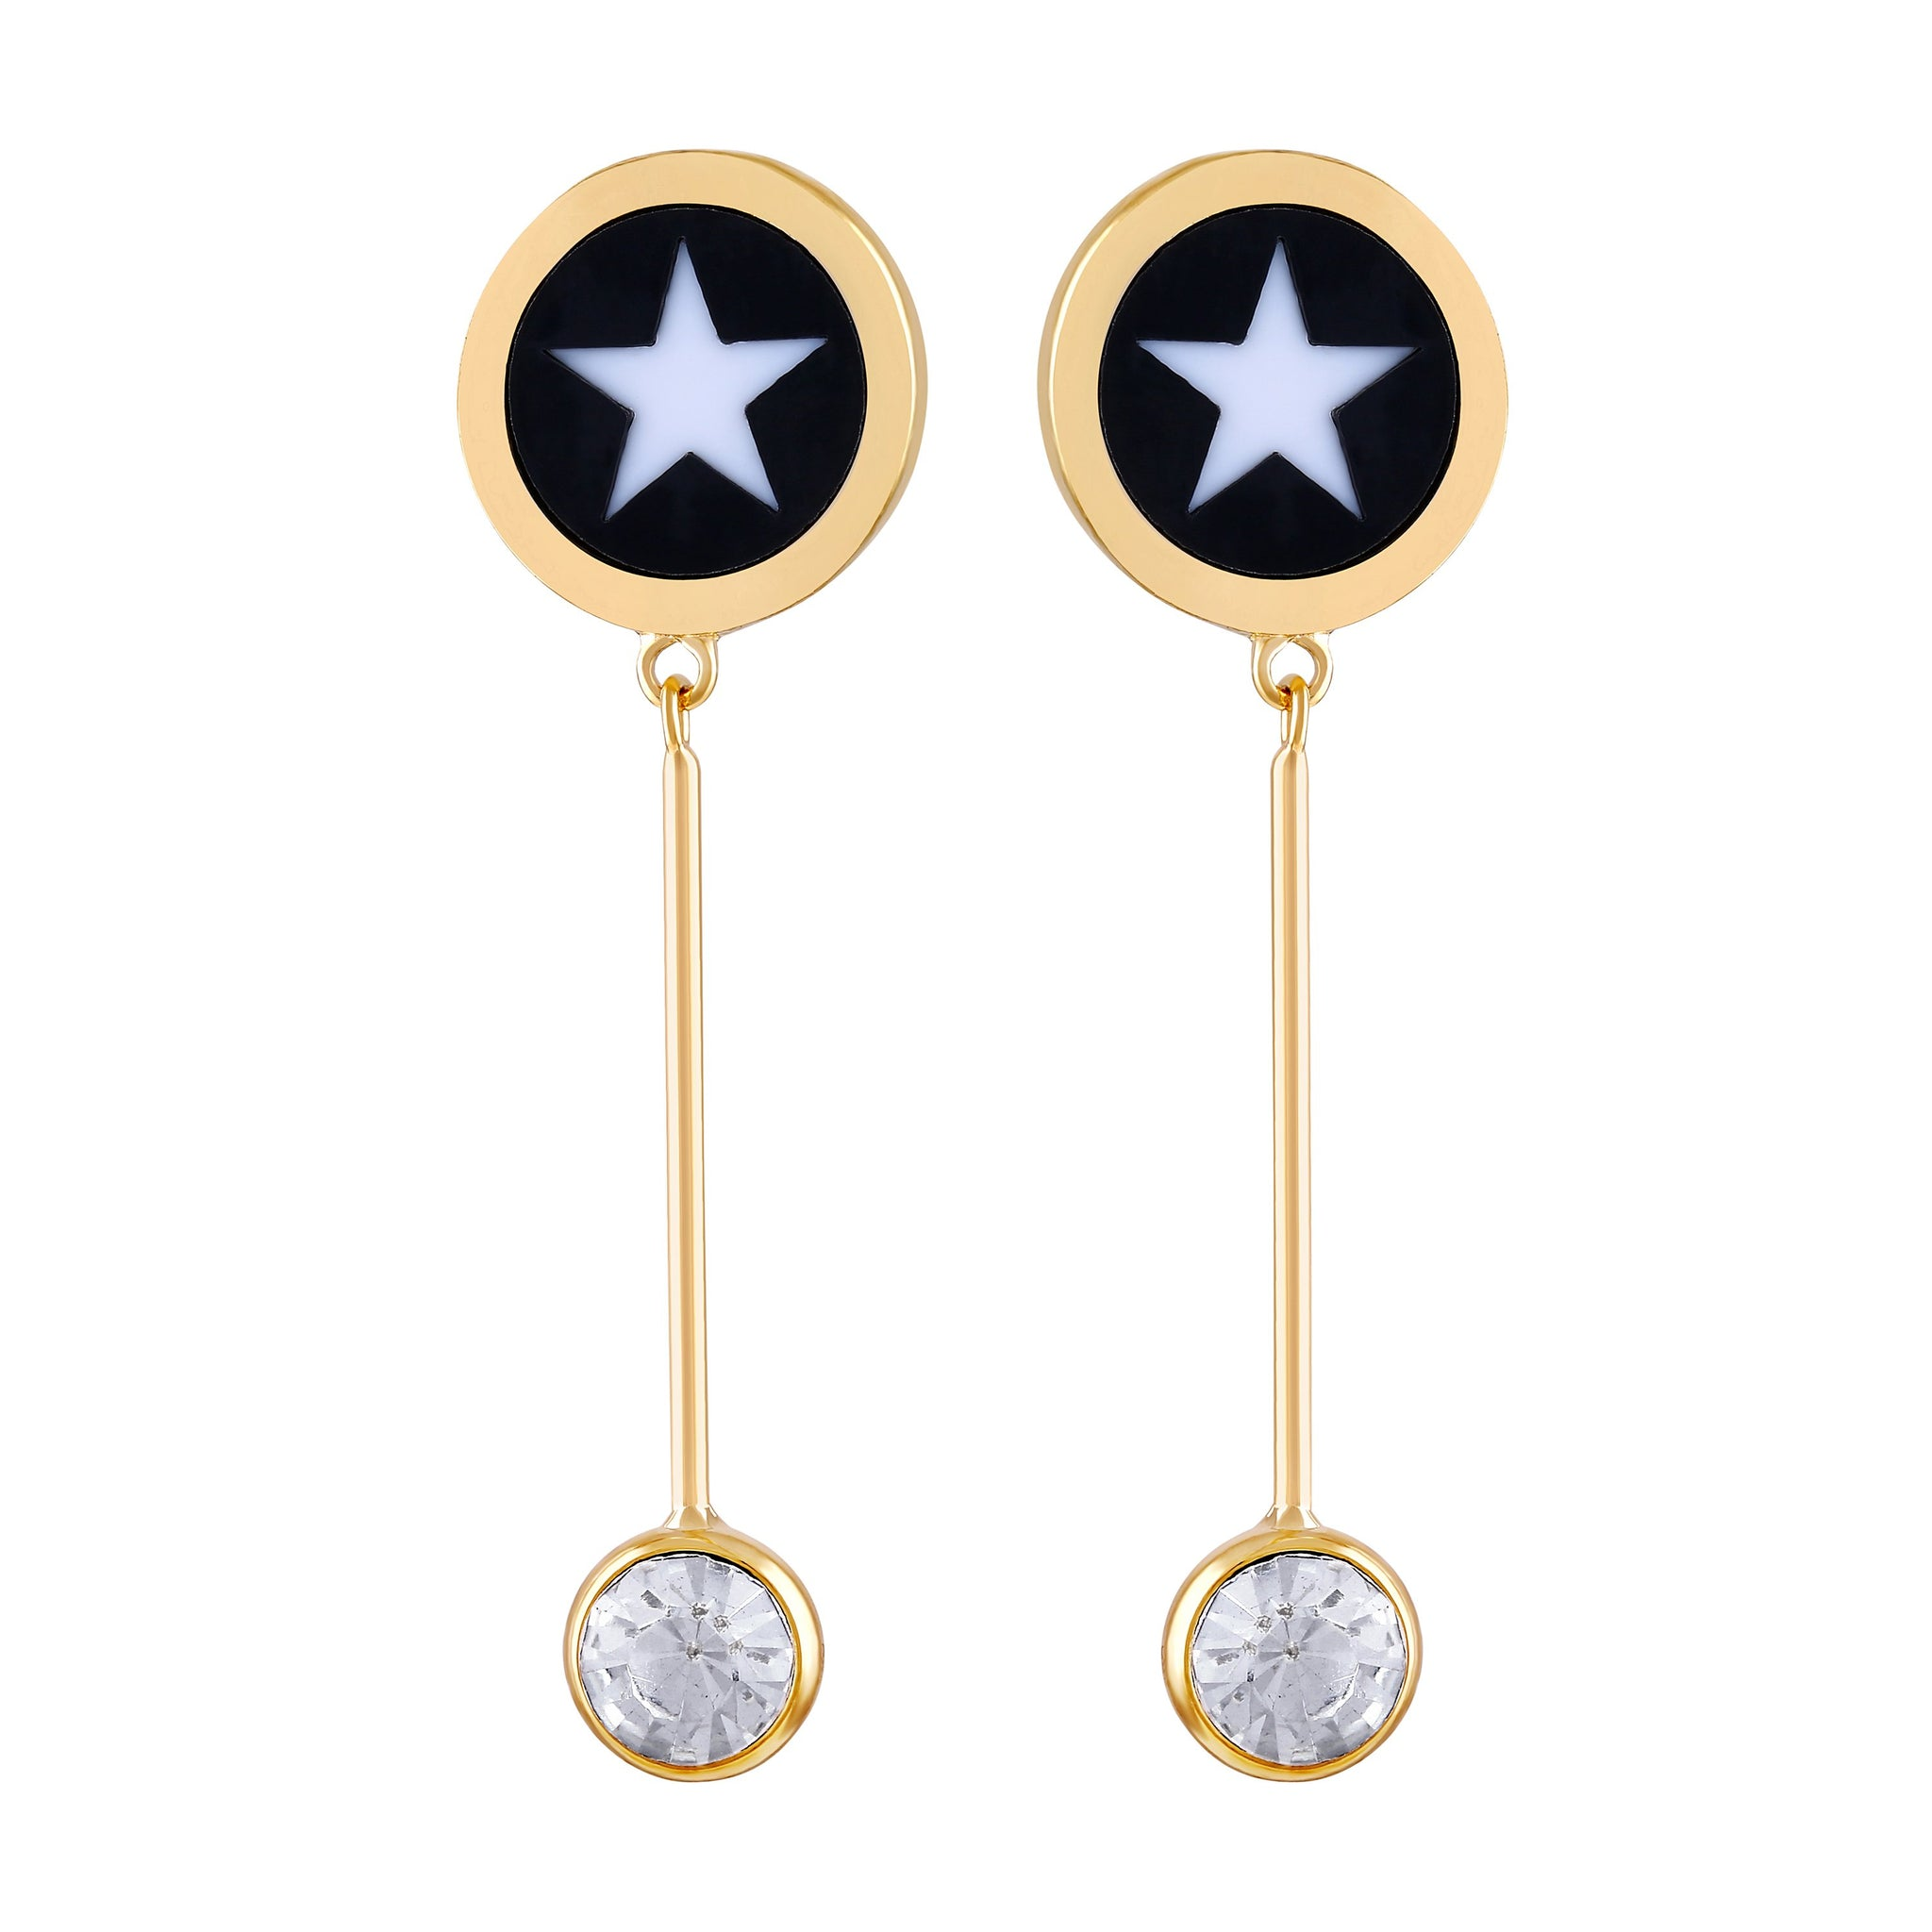 Asmitta Artistically Dangle Gold Plated Round Shape Star Design Earring For Women